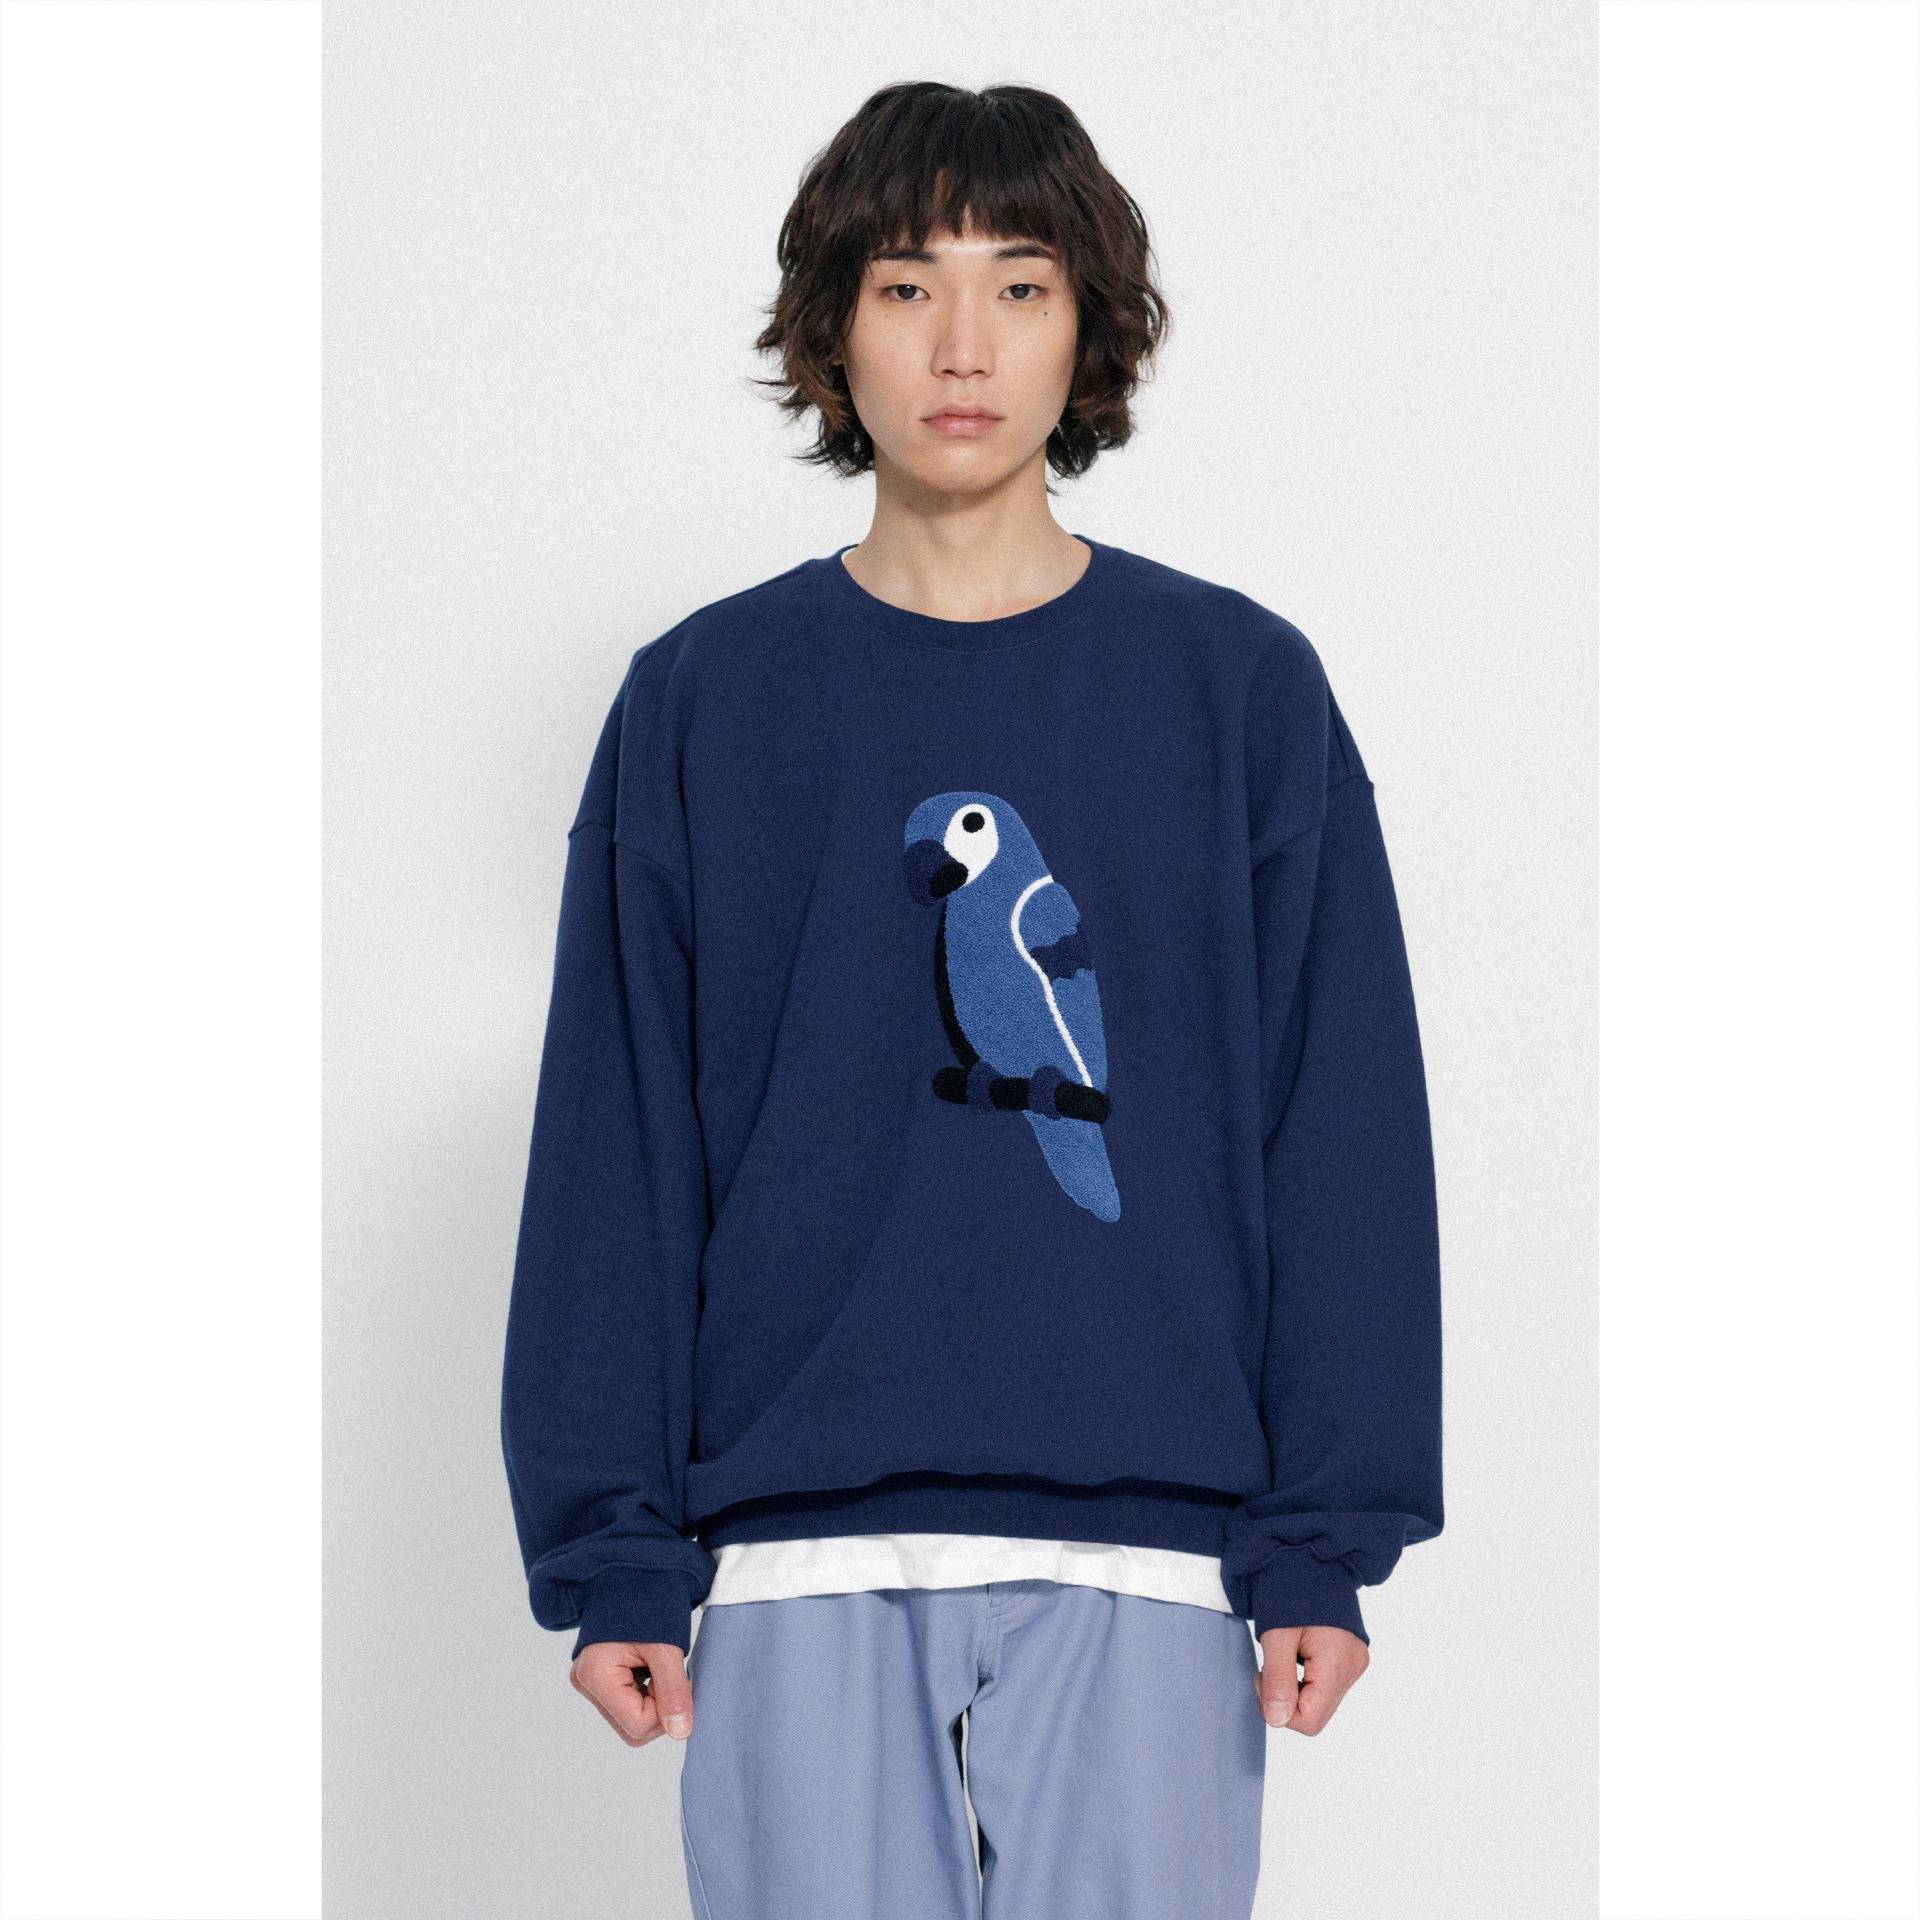 KANCO FULL LOGO SWEATSHIRT navy